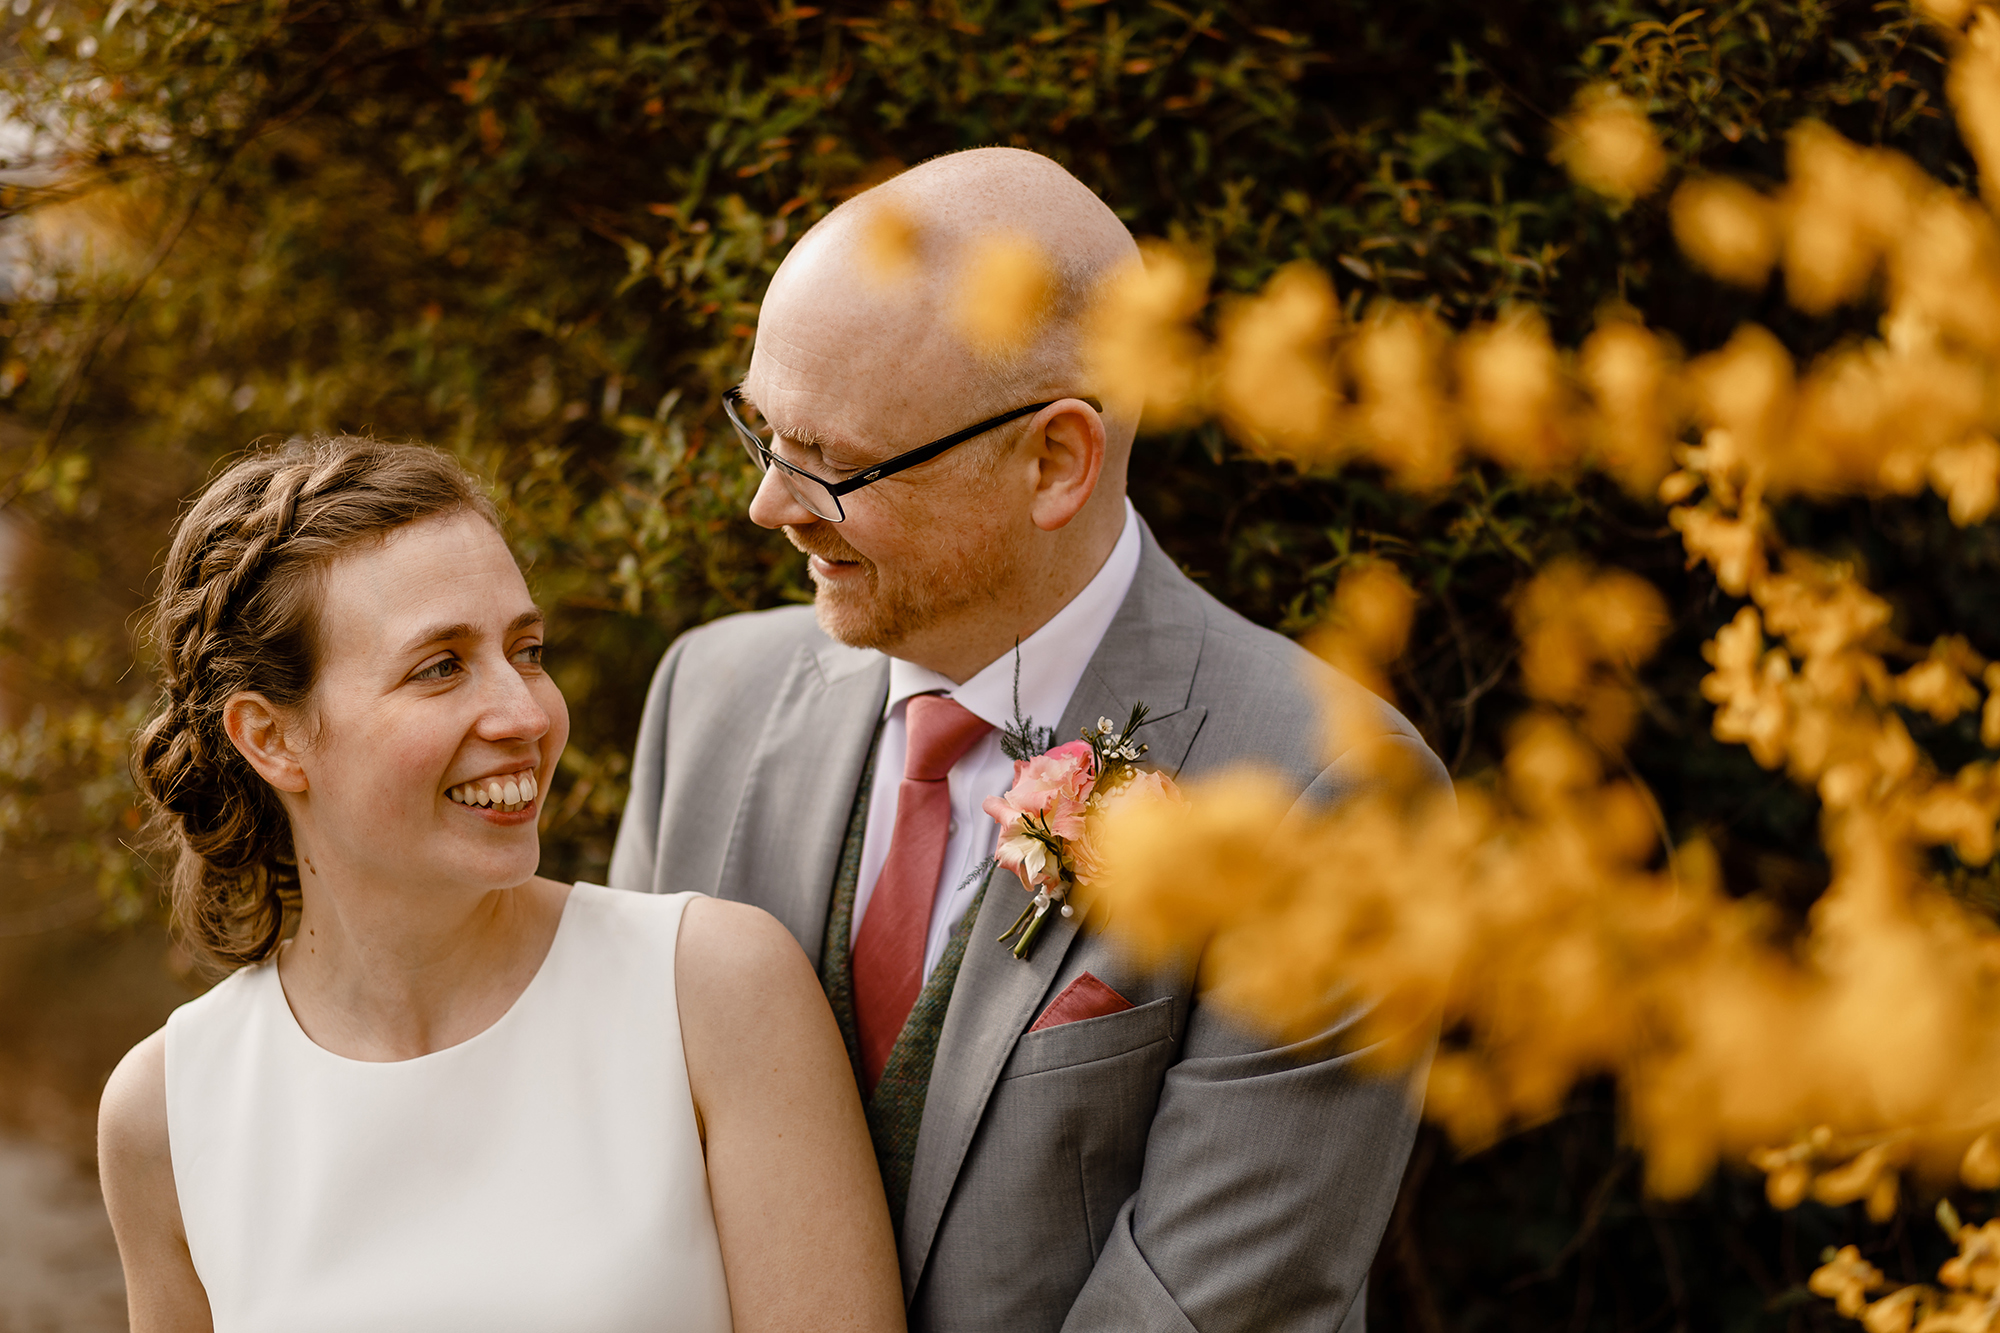 A portrait of a bride and groom laughing by some yellow flowers